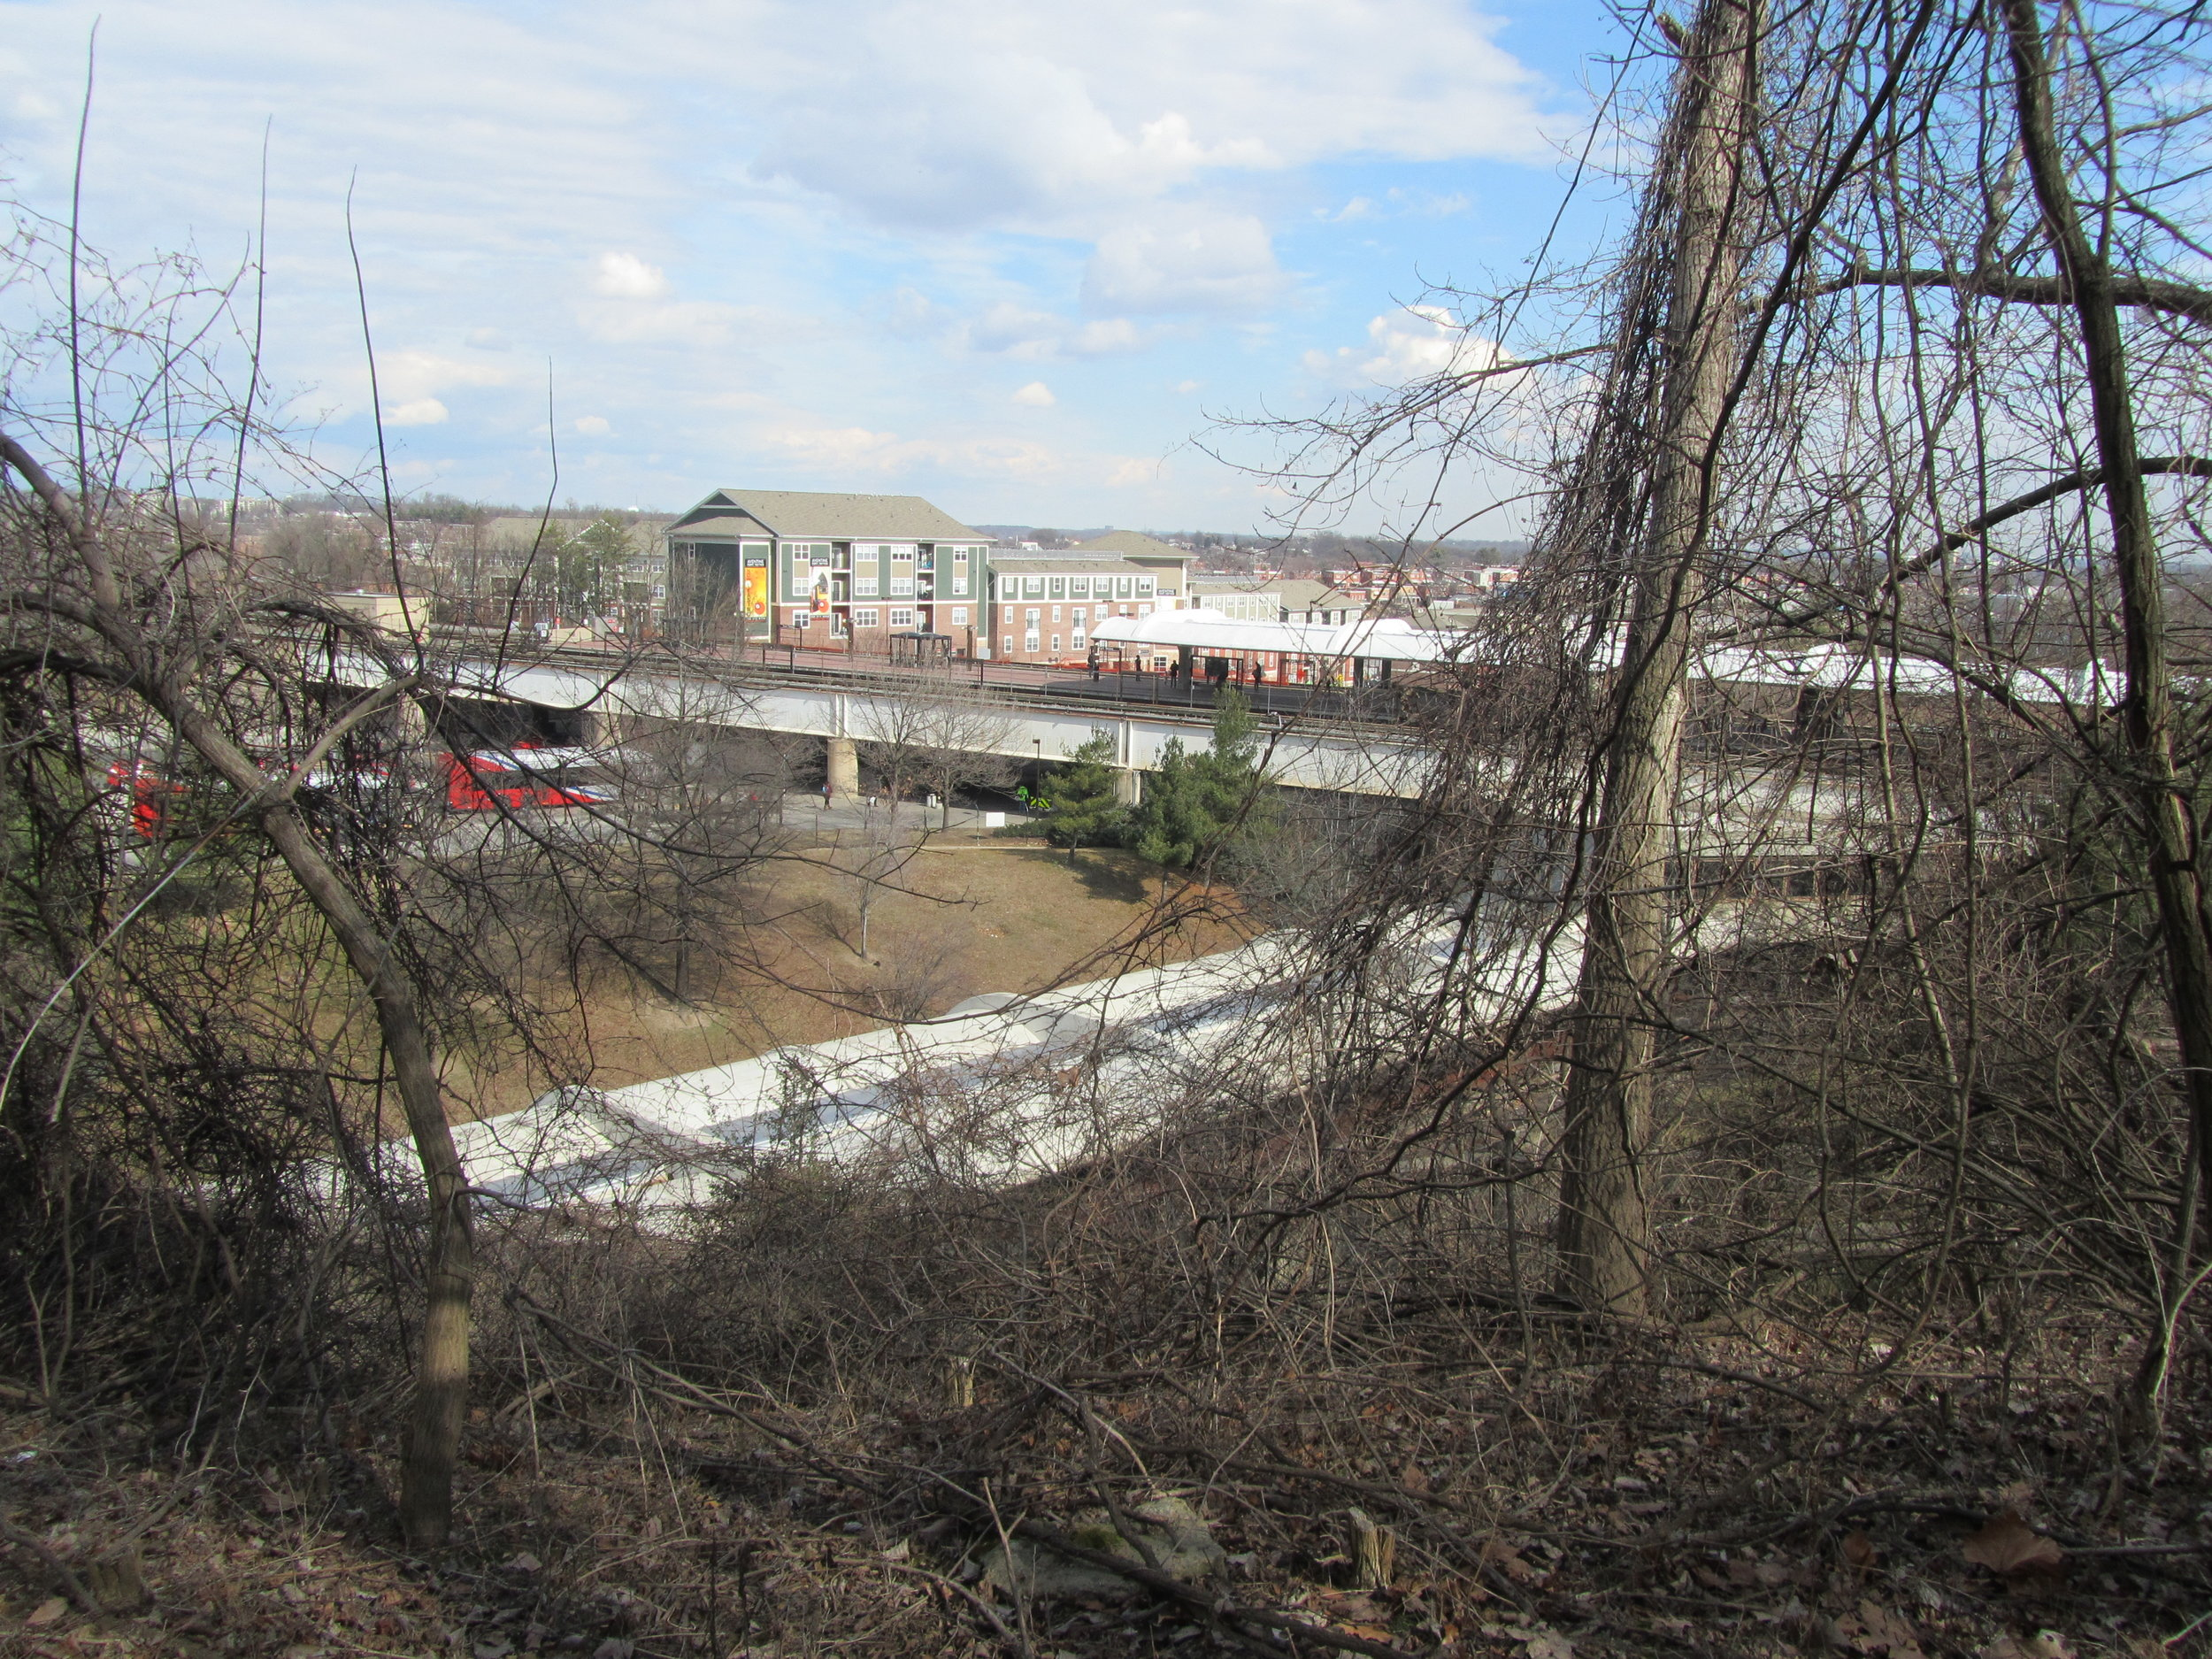 Image of the red line track at the Fort Totten Station, taken from the wooded area adjacent to the Fort Totten Metro Station